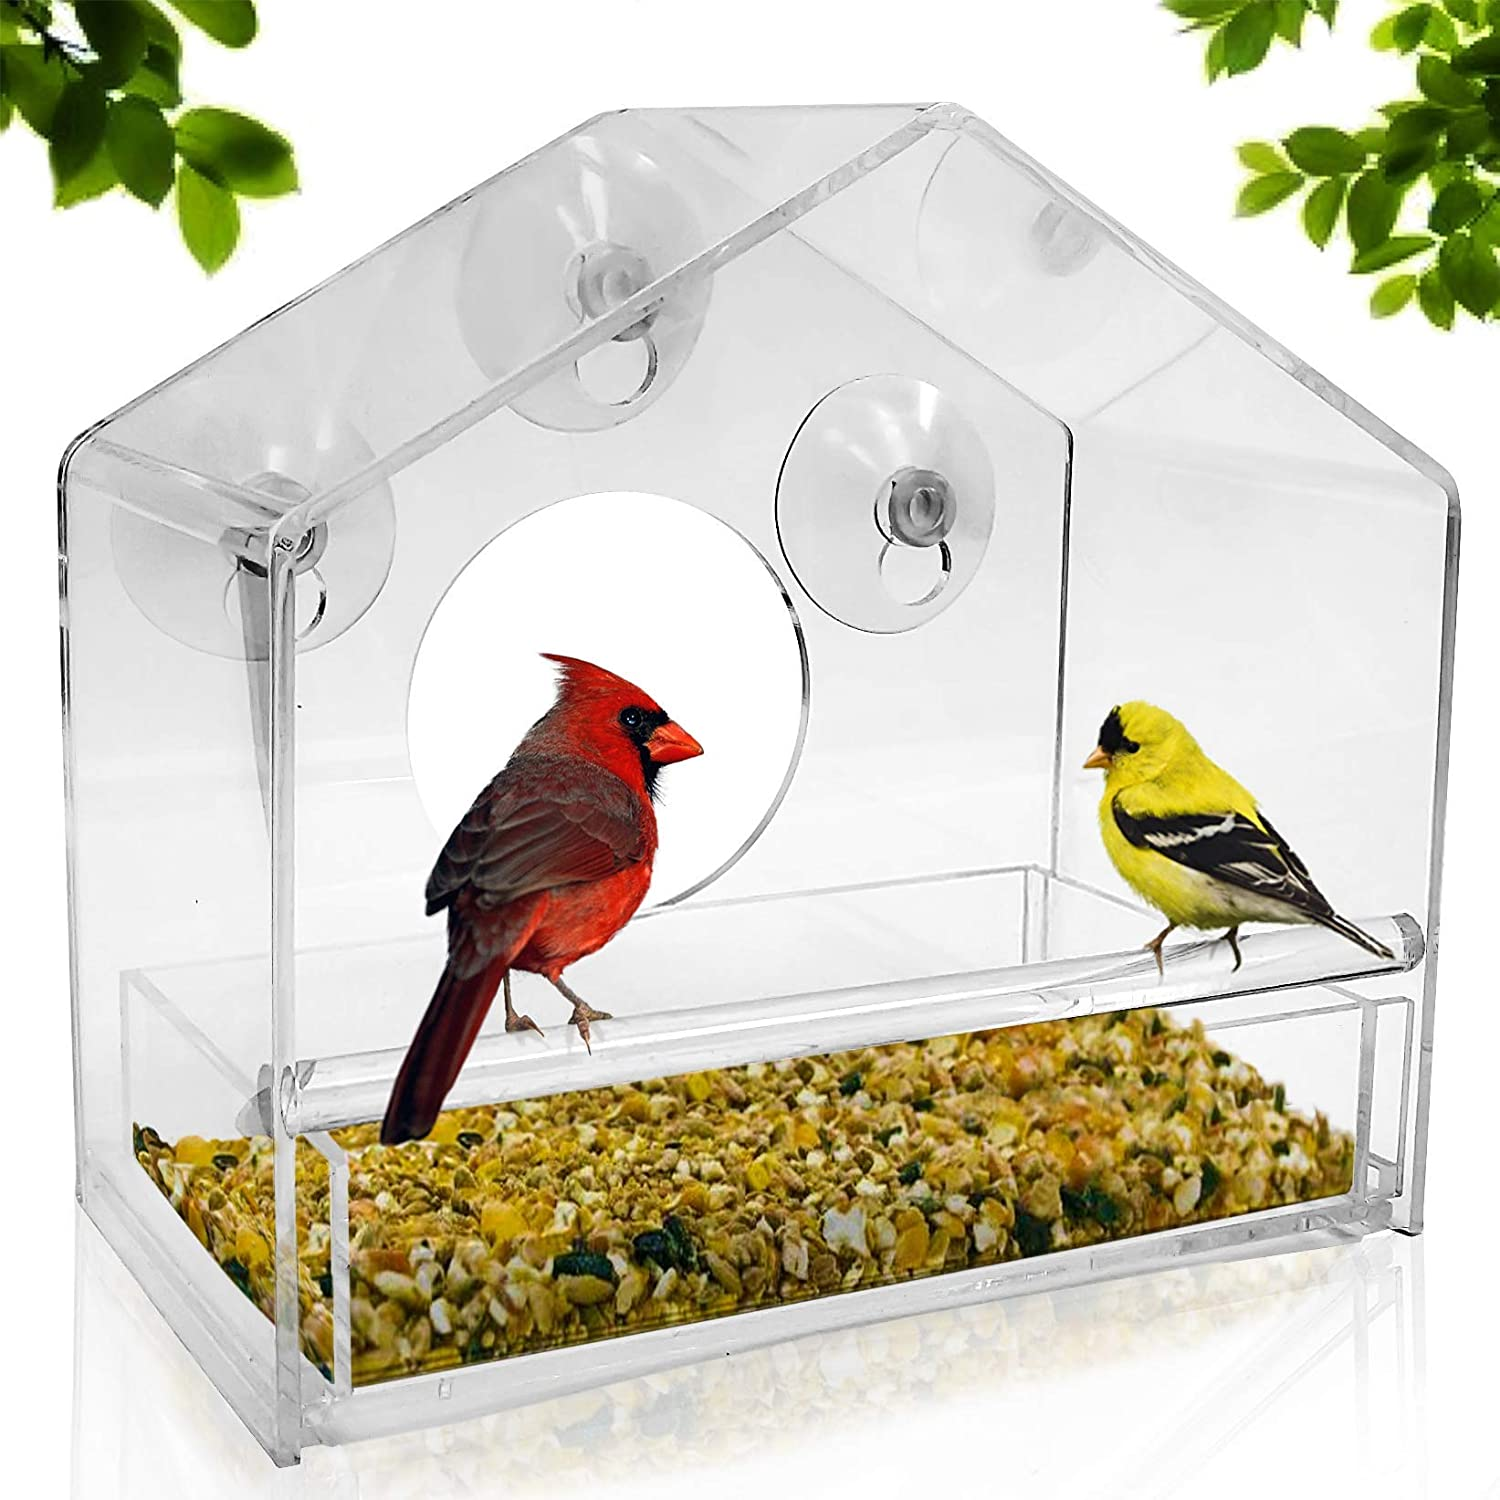 Limited time sale Nature Gear Window Bird Feeder Tray Sale special price Refillable Weath Sliding -